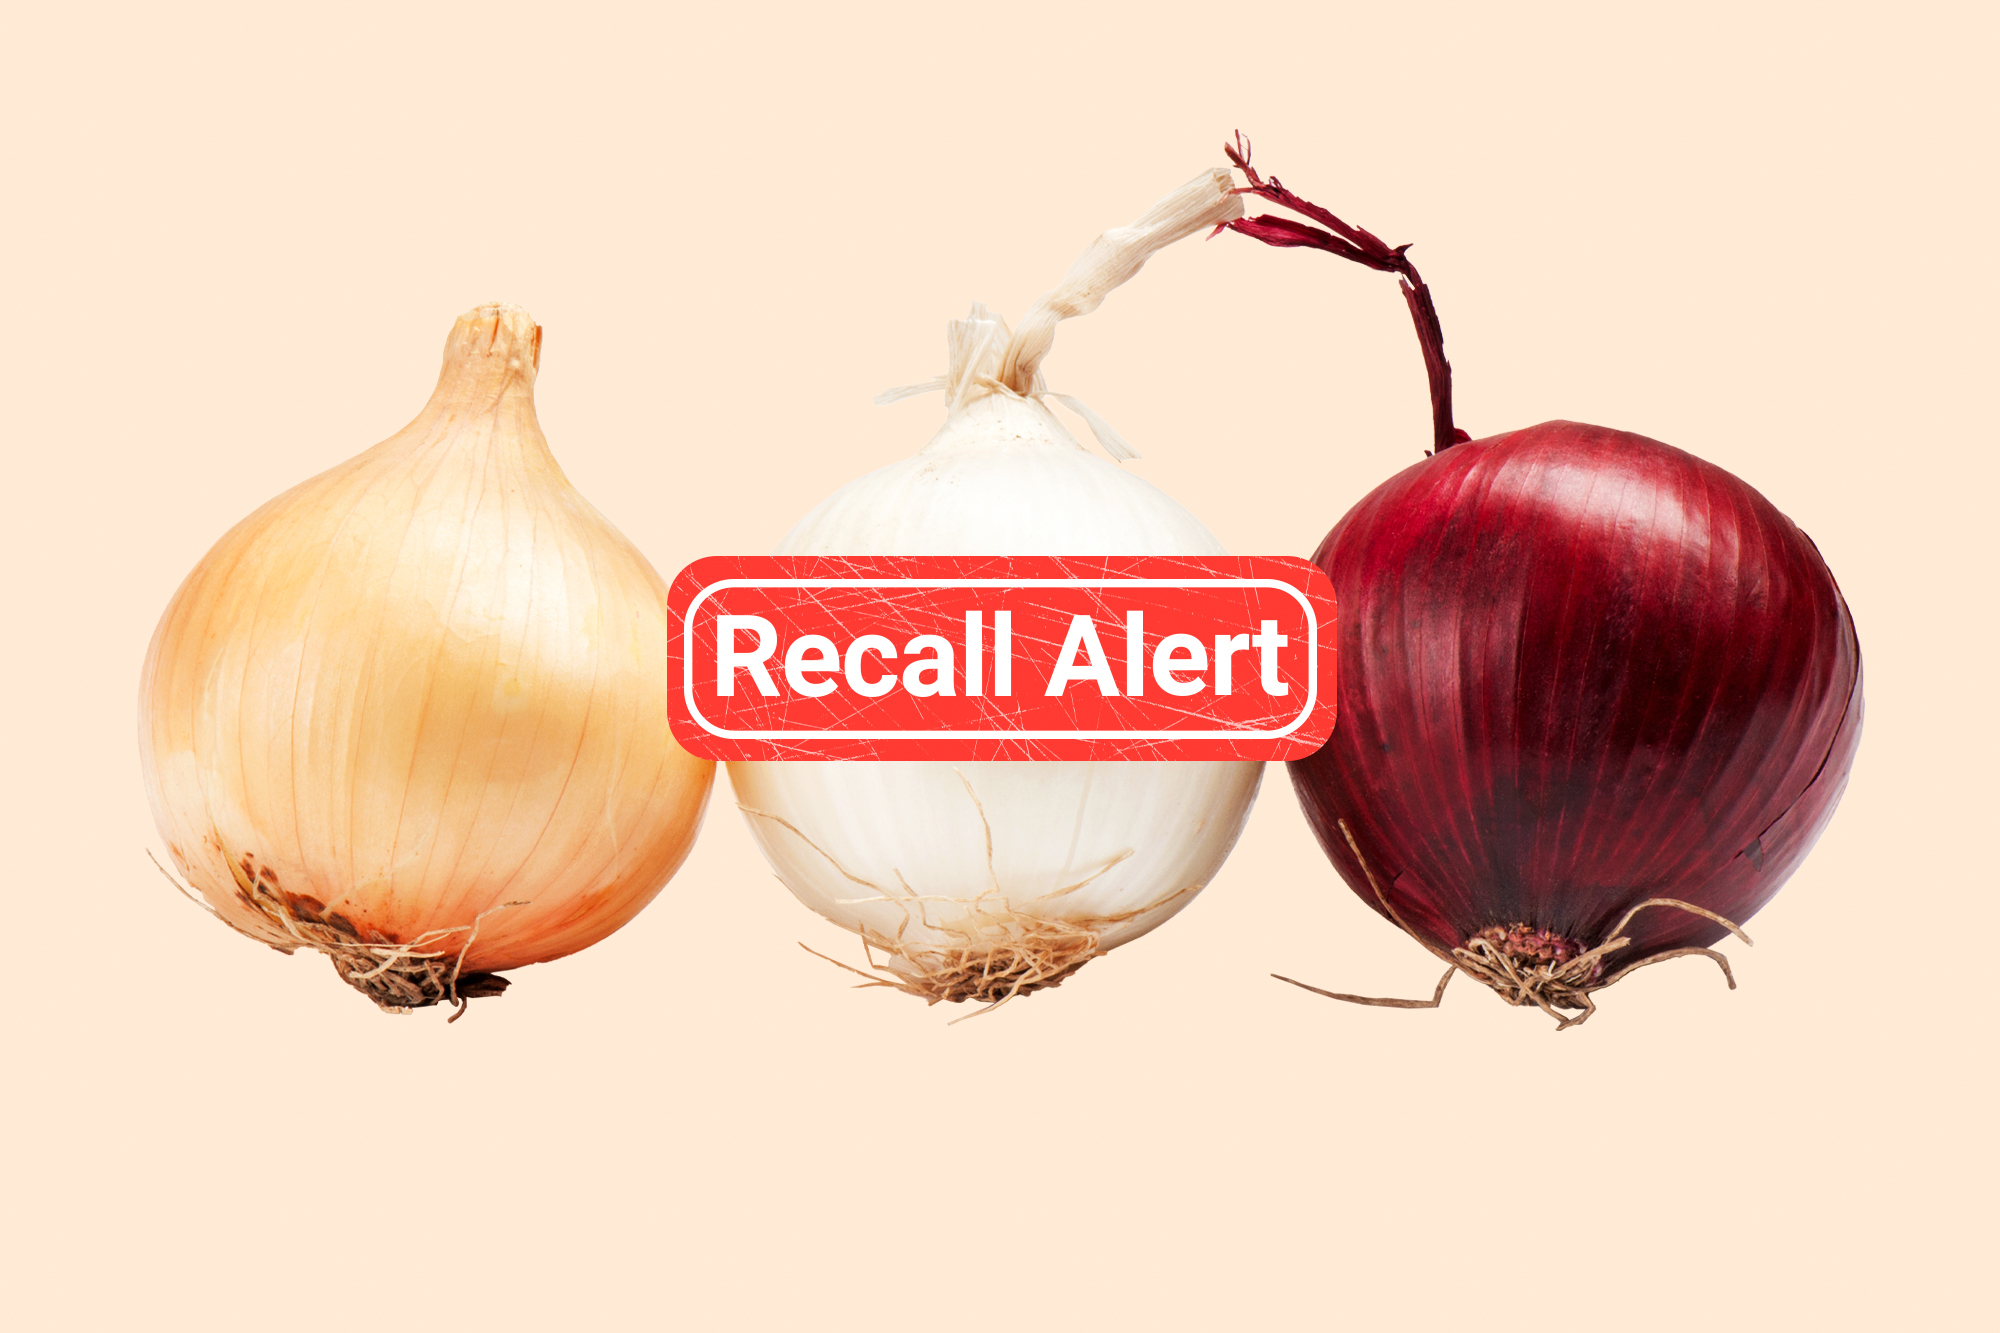 3 types of onions on a designed background with a recall alert button on top.